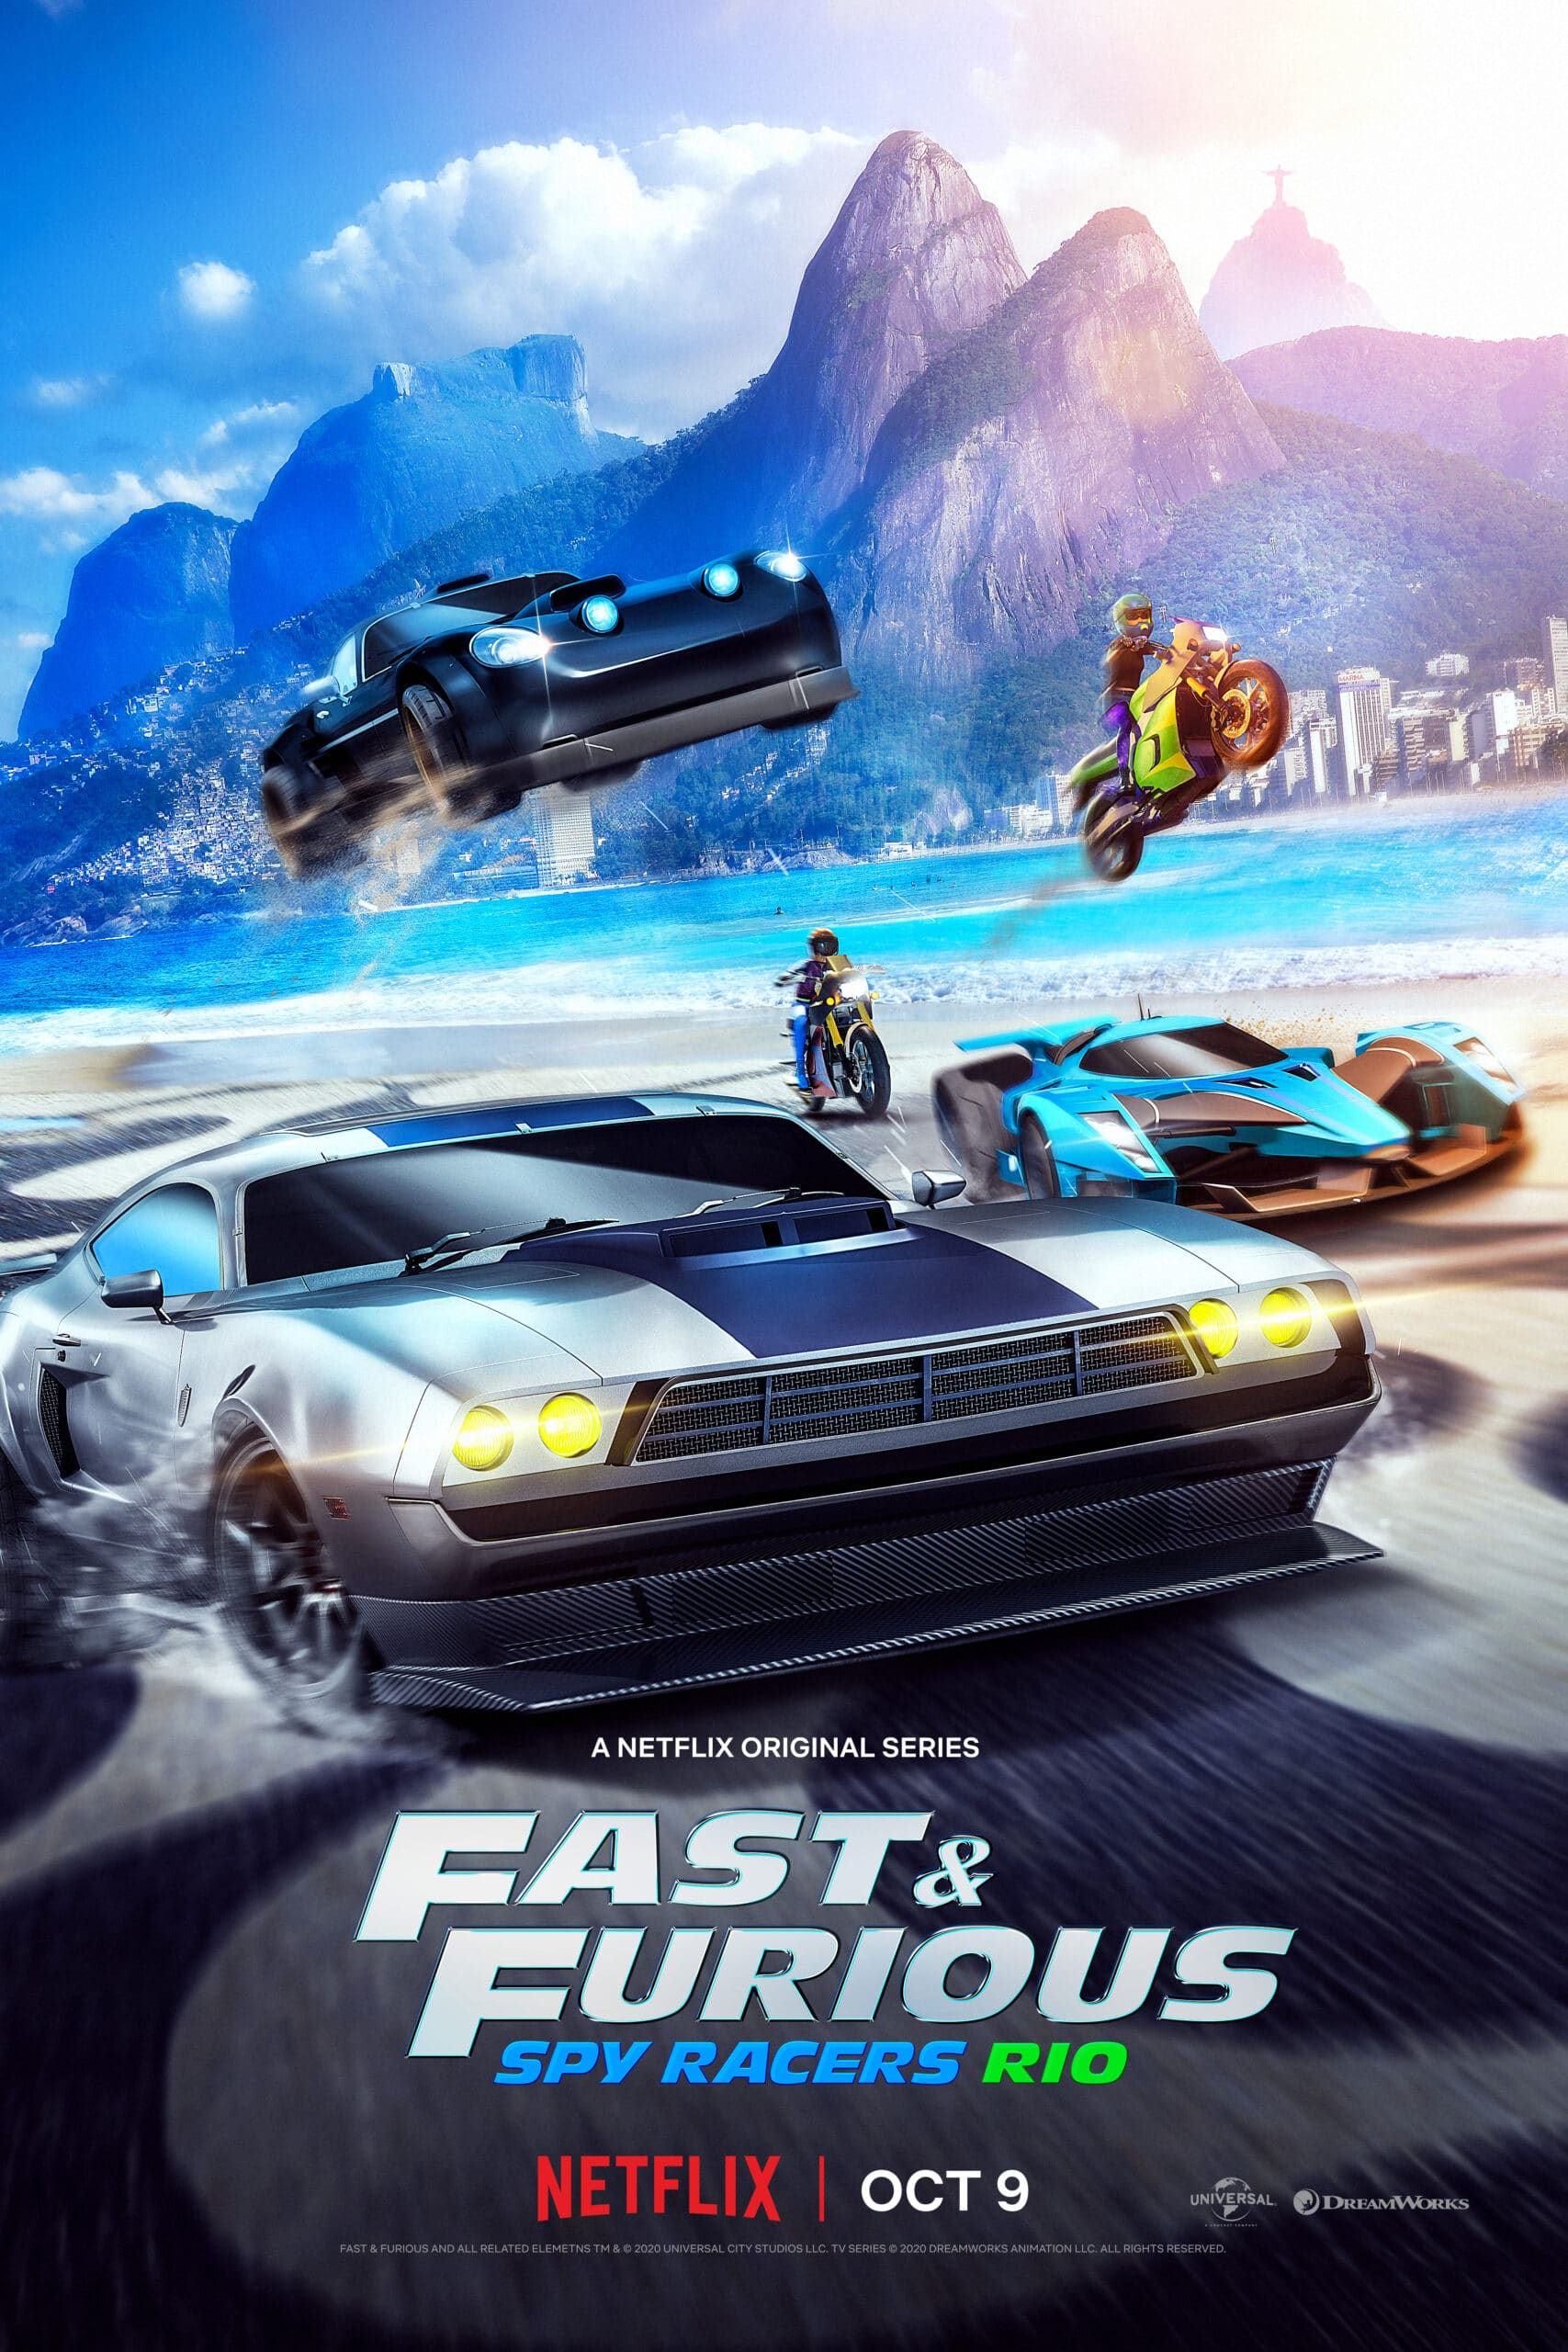 Fast & Furious: Spy Racers Trailer. Universal and DreamWorks Animation have released the second season trailer for the hit Netflix Original series Fast & Furious: Spy Racers, which finds the team heading to Rio de Janeiro on October 9. Check out the full trailer below, as well as more information about what to expect in Season 2